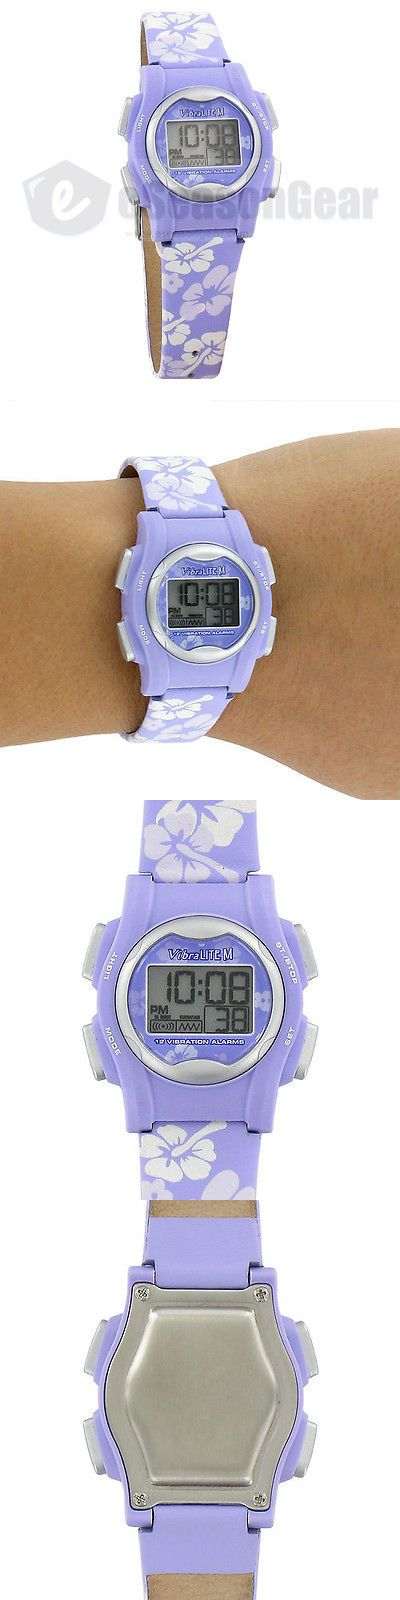 Hearing Assistance: Vibralite Mini 12 Alarm Small Vibrating Watch For Kids Purple Flower Vm-Lpl 22 -> BUY IT NOW ONLY: $43.95 on eBay!